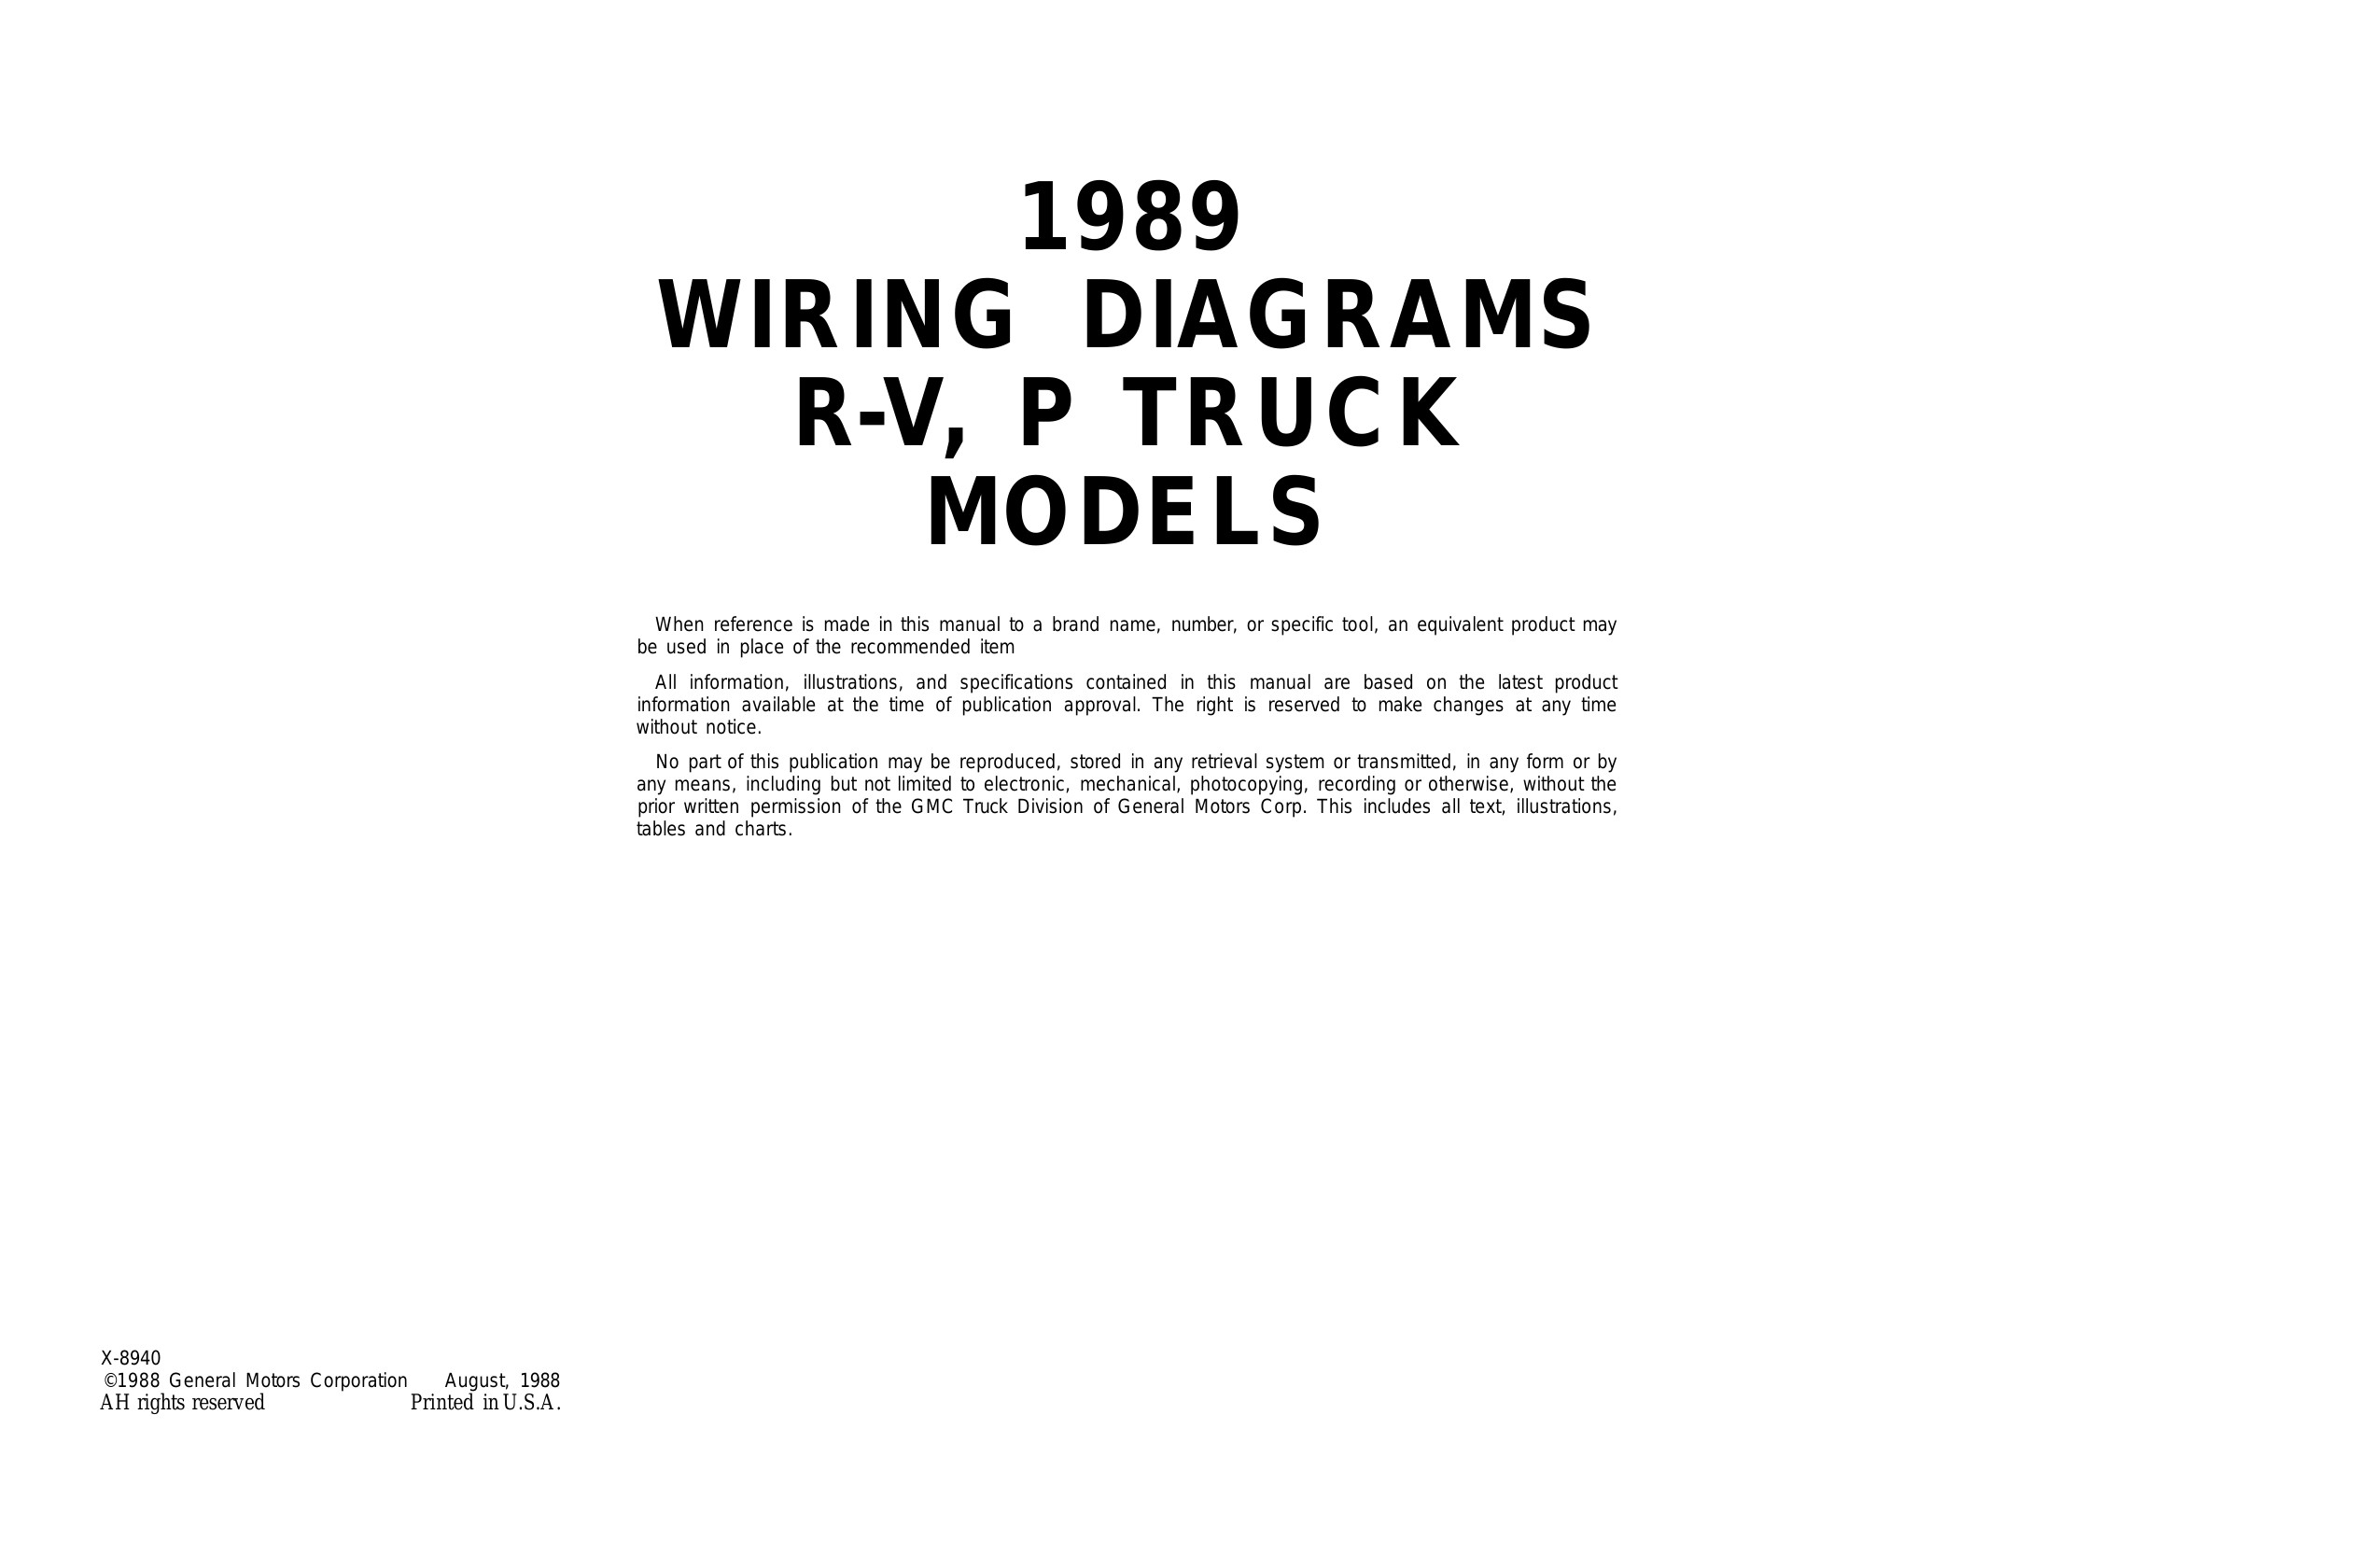 C13 and C14 Wiring Diagrams 1989 Wiring Diagrams Rv P Truck Models 73 Of C13 and C14 Wiring Diagrams